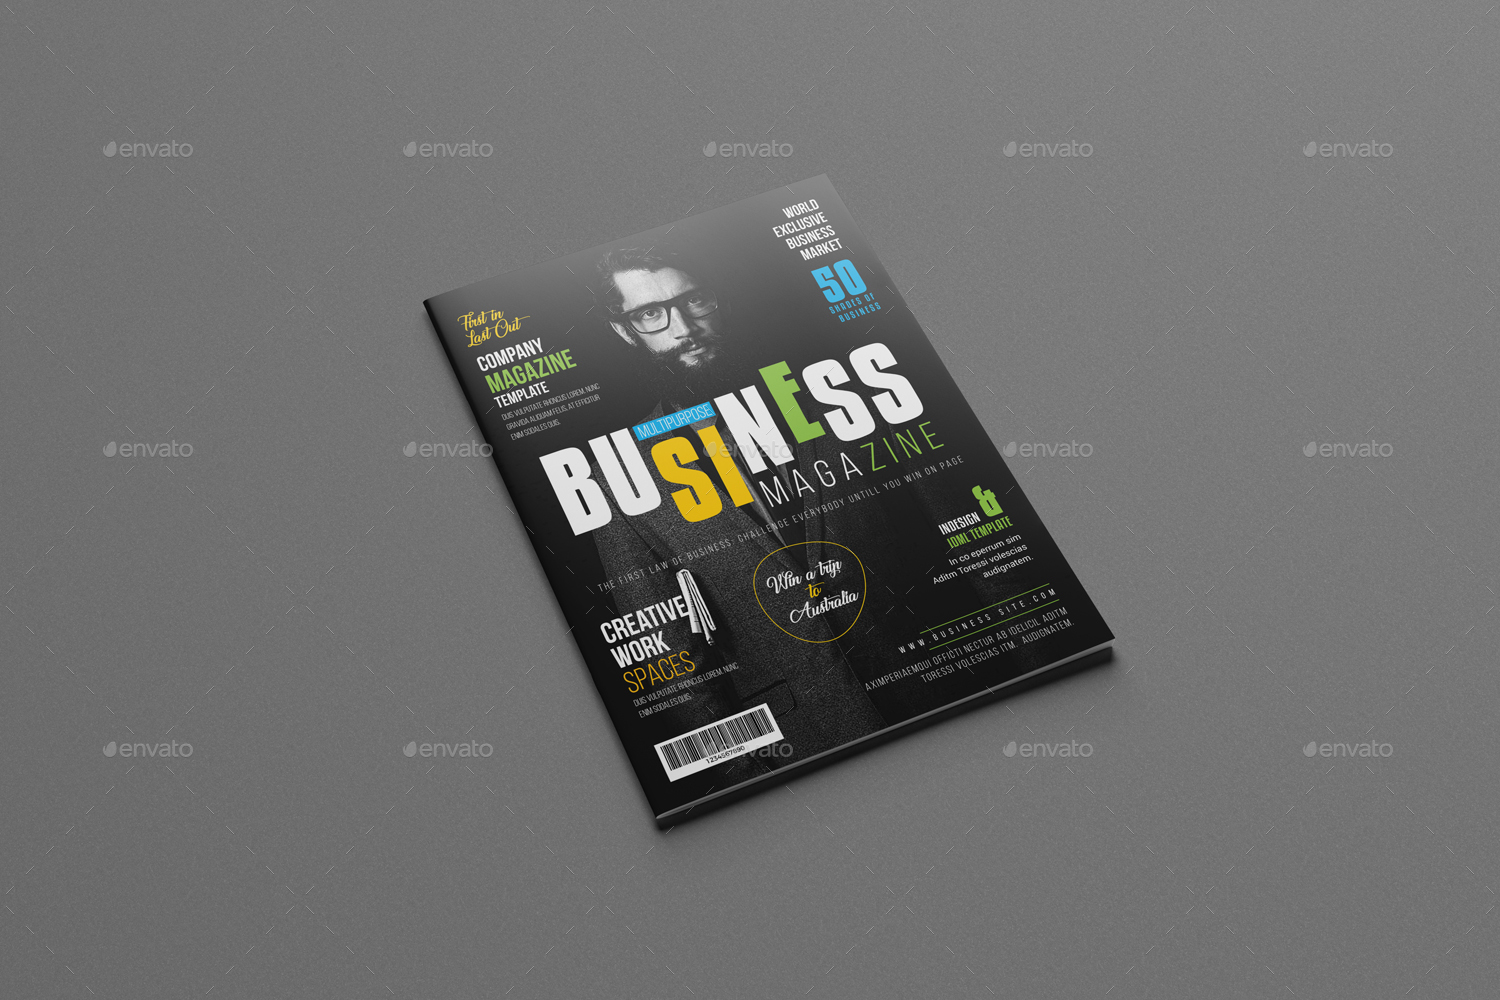 Businessmultipurpose magazine template by designsoul14 graphicriver businessmultipurpose magazine template magazines print templates preview image setpreview image01g accmission Image collections